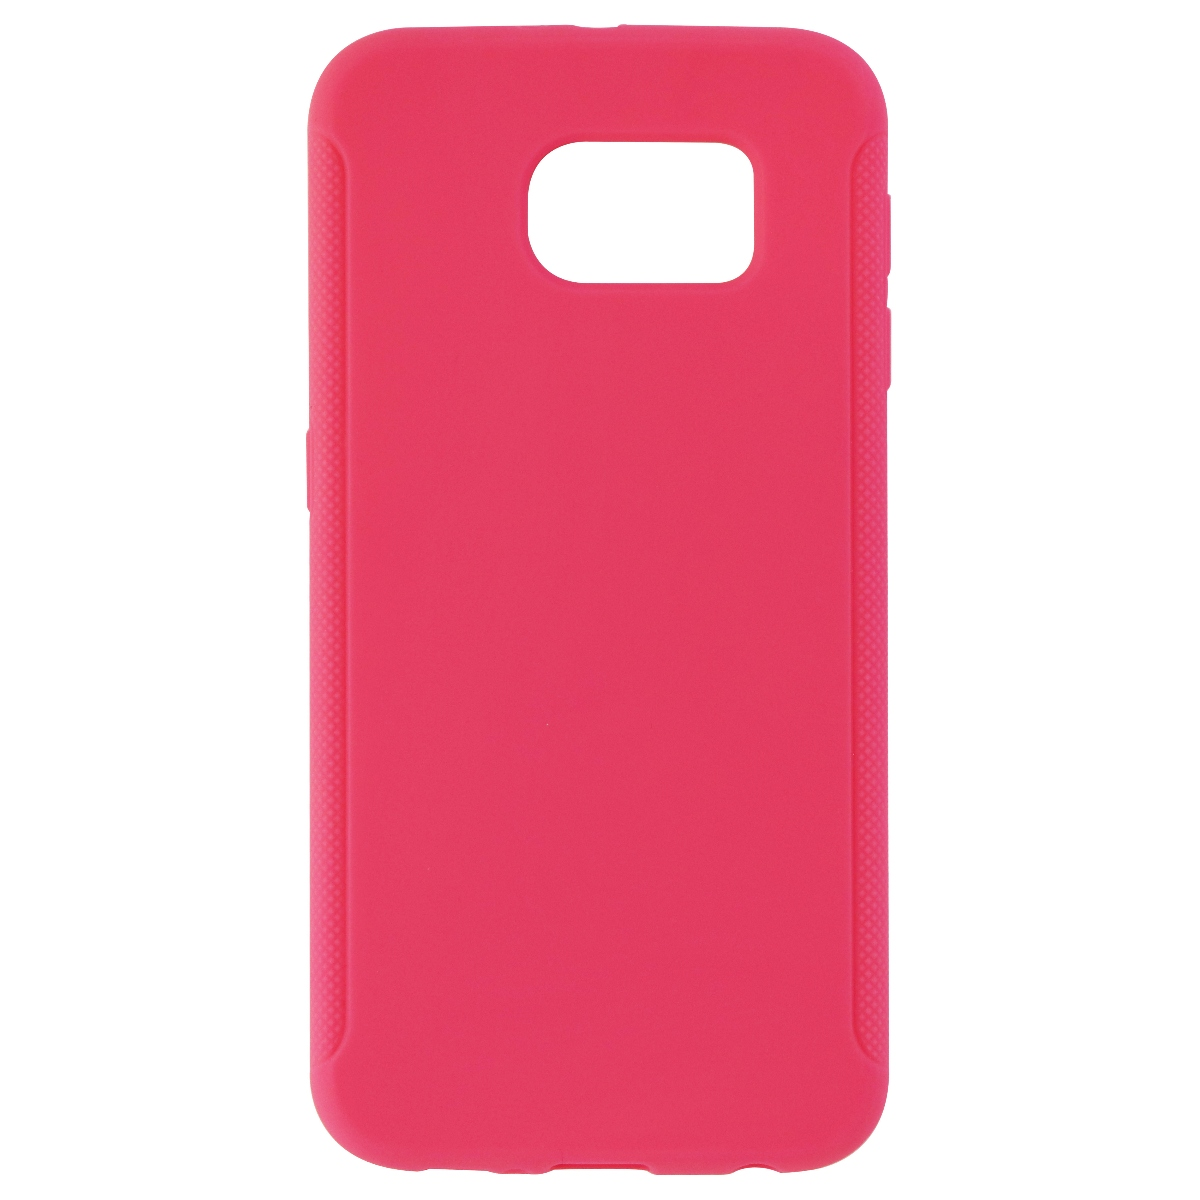 Insignia Soft Shell Series Protective Case Cover for Samsung Galaxy S6 - Pink